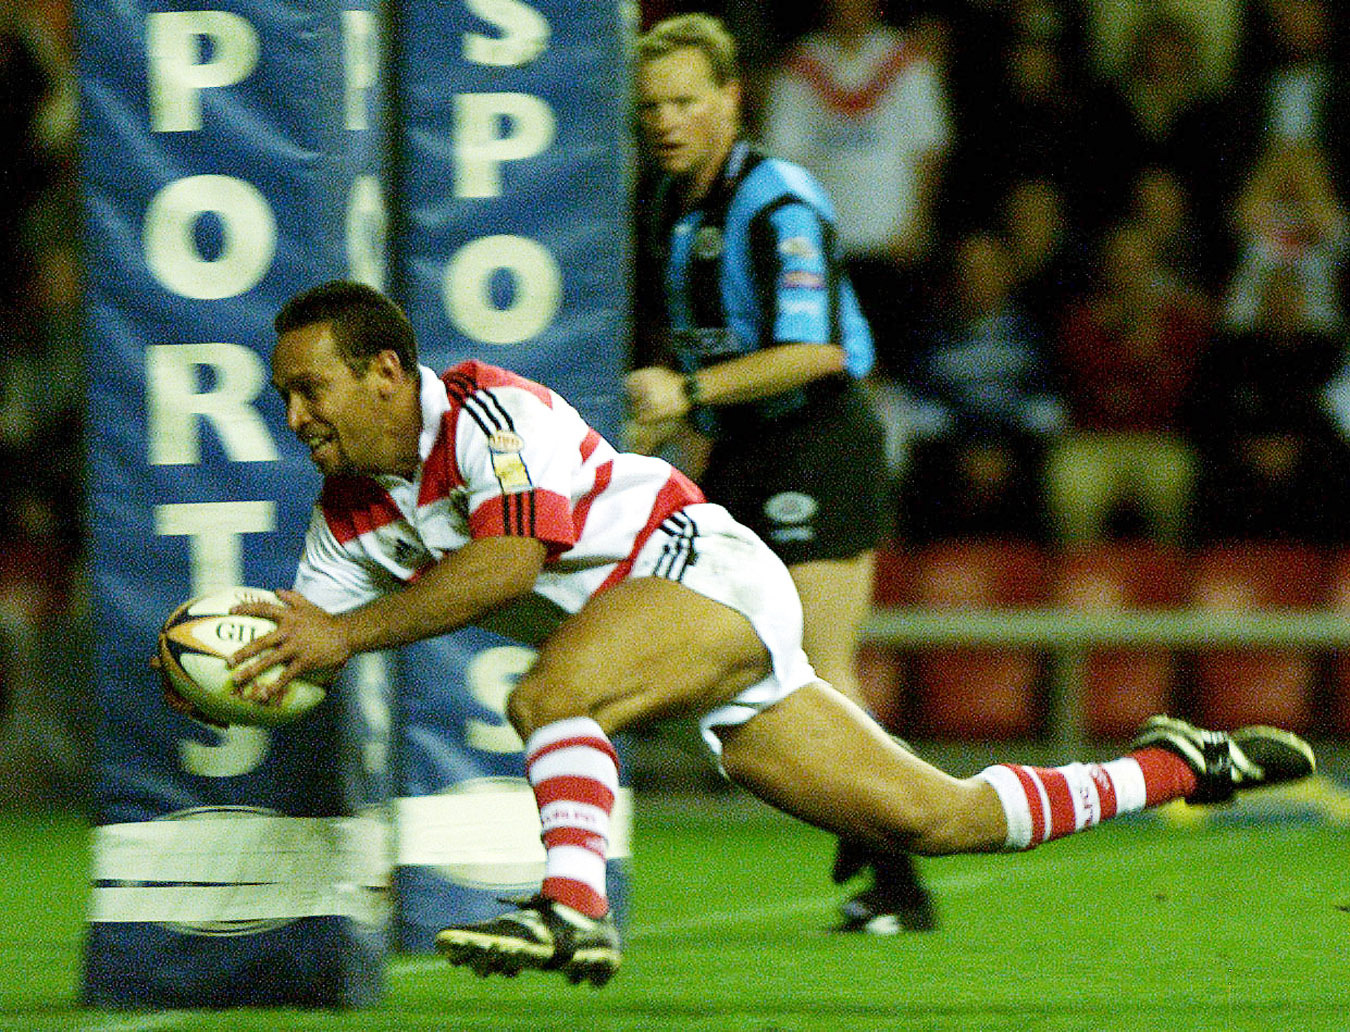 Wigan's Adrian Lam dives in for the first try of the second half, during the Tetley's Bitter Super League Final Eliminator game at the JJB Stadium, Wigan, Saturday 6th October 2001 . **EDI** PA Photo: Dave Kendall. Running on PA Wire and pasportsp